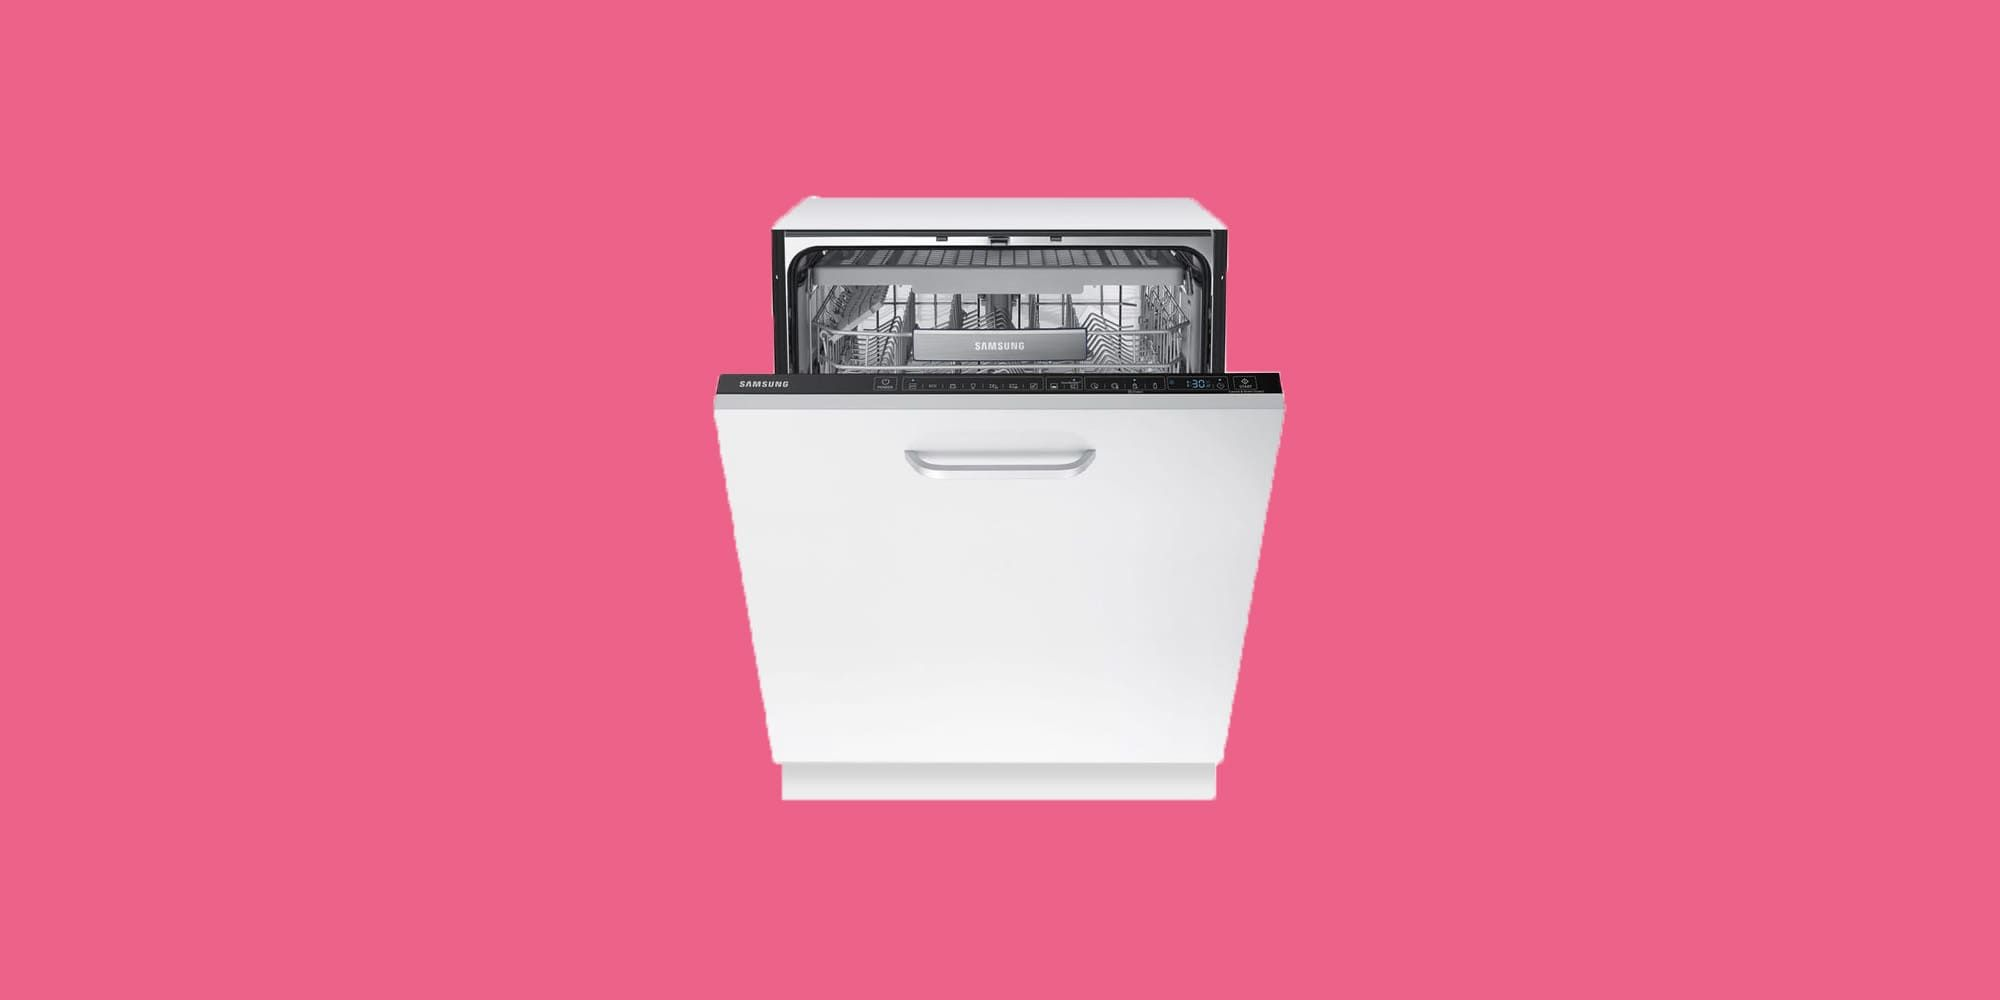 Samsung Small Kitchen Appliances for